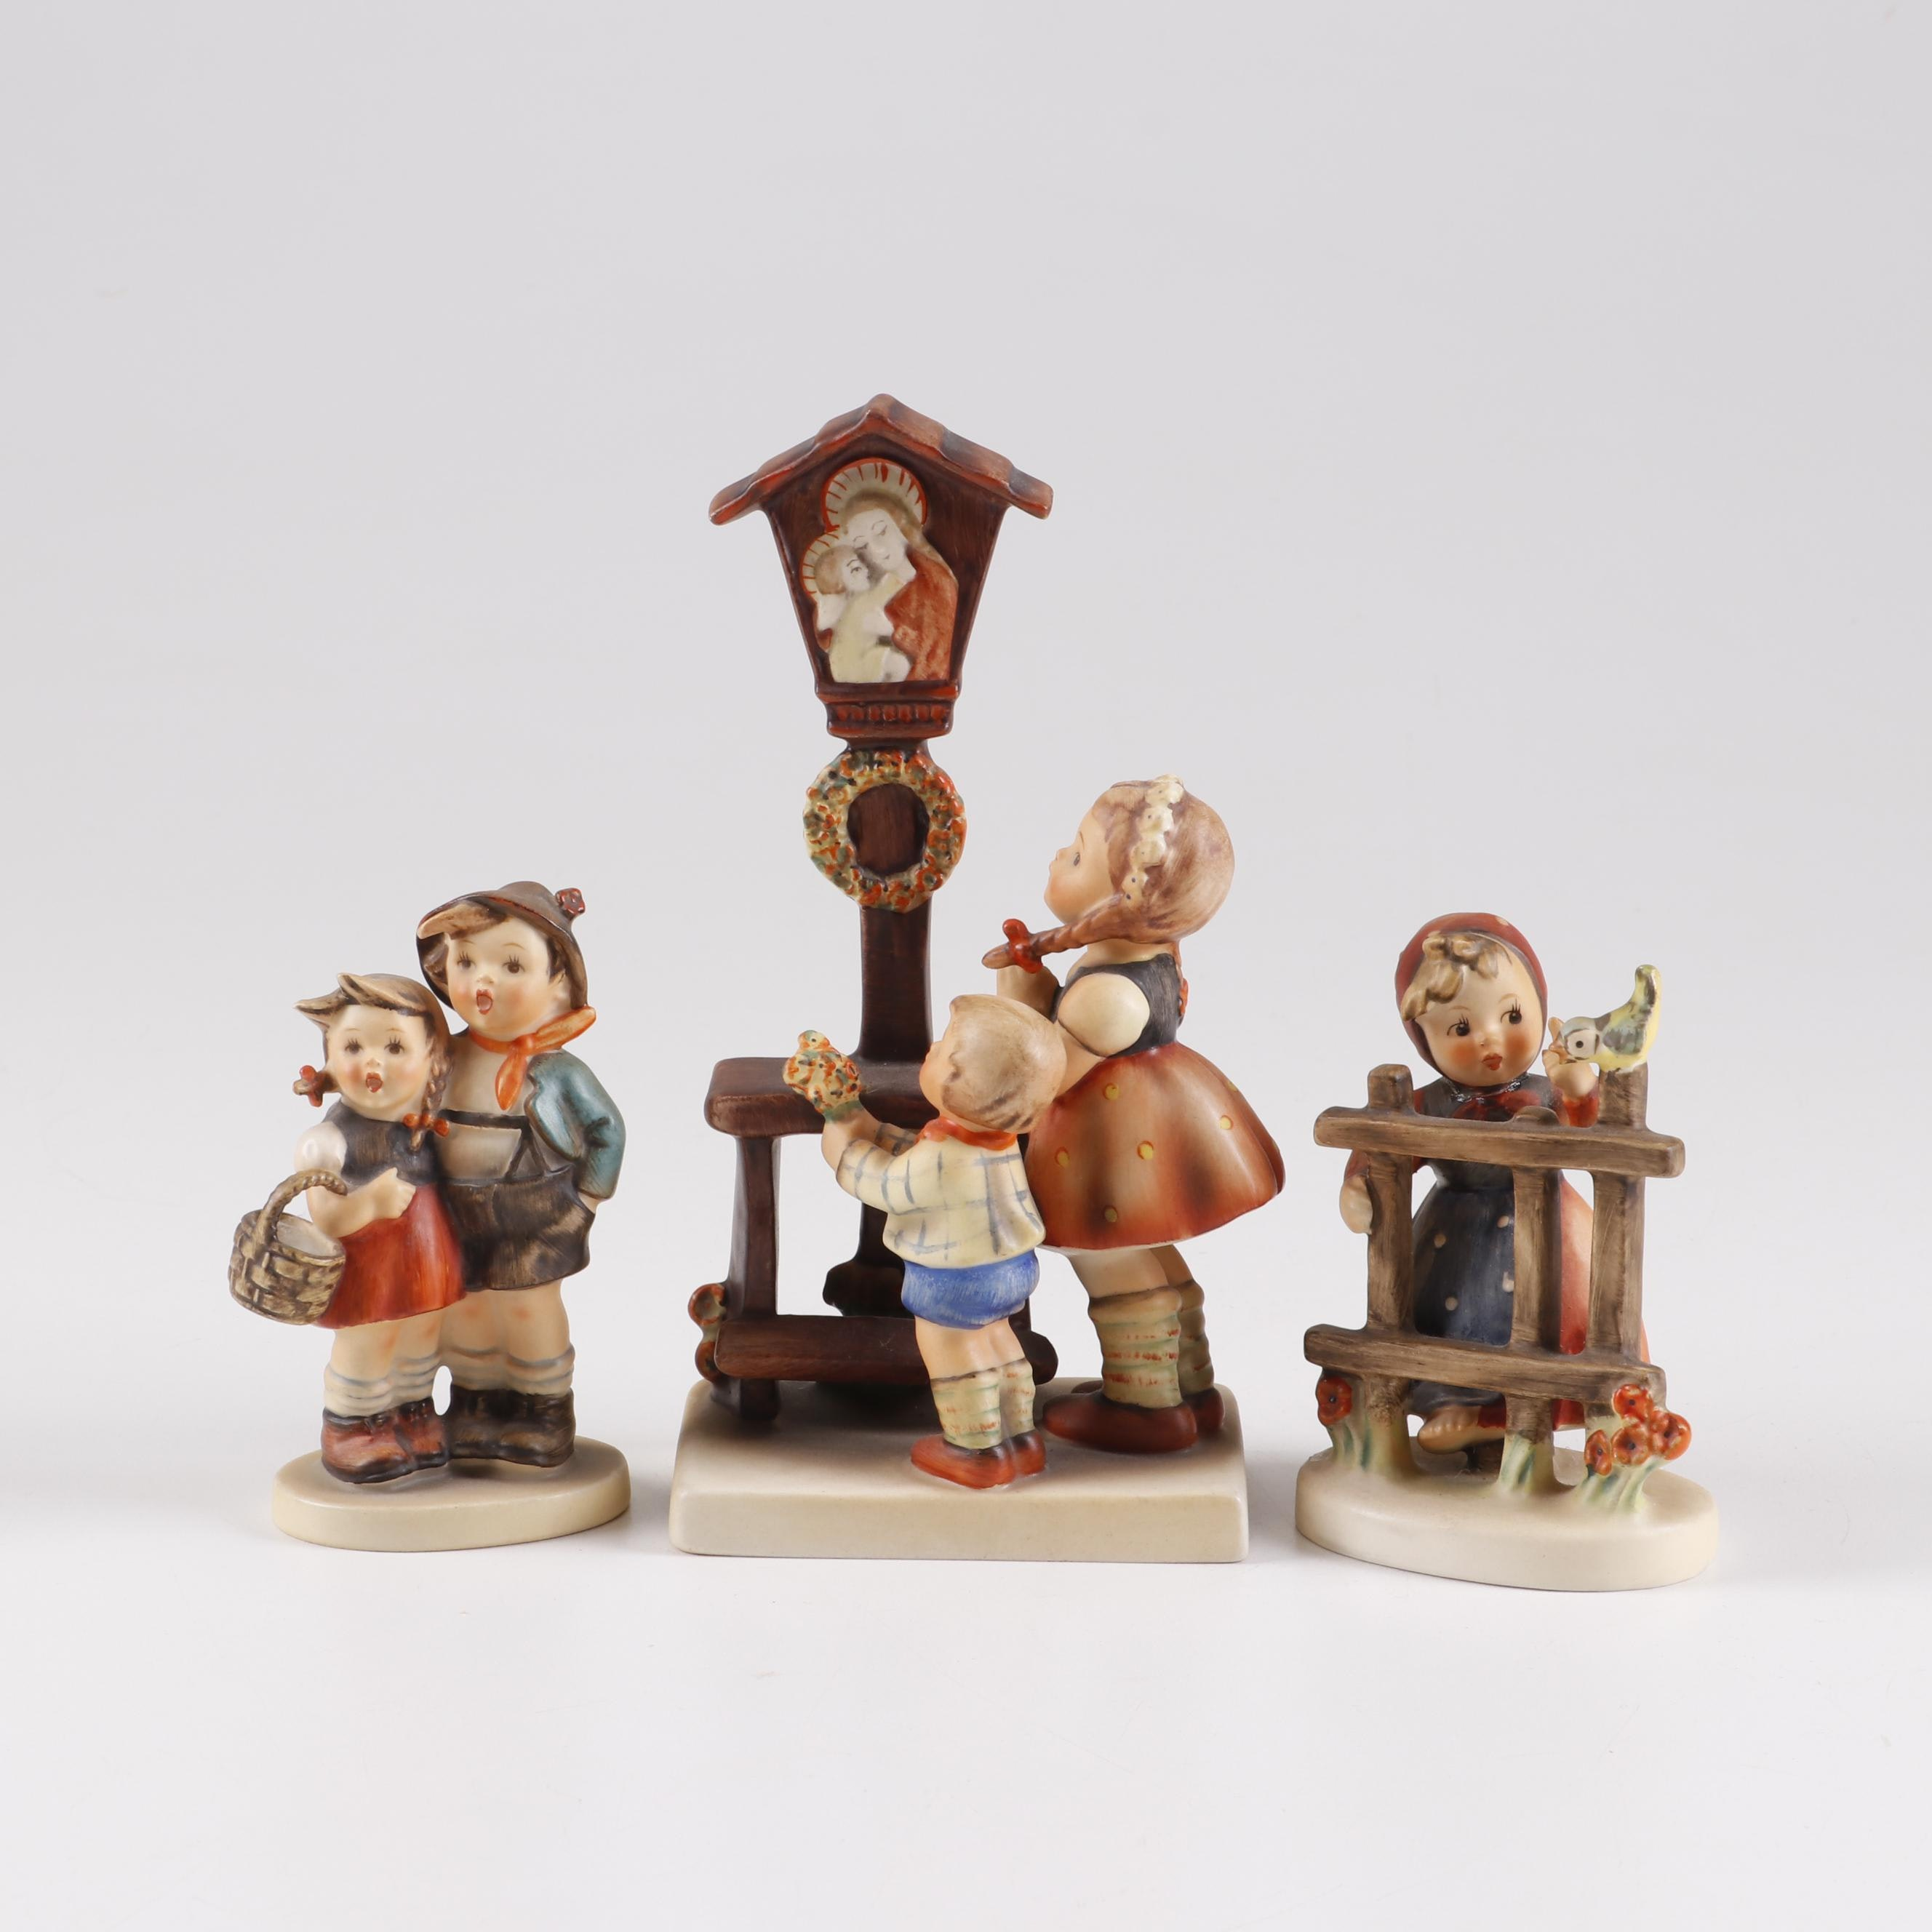 Goebel Hummel Porcelain Figurines